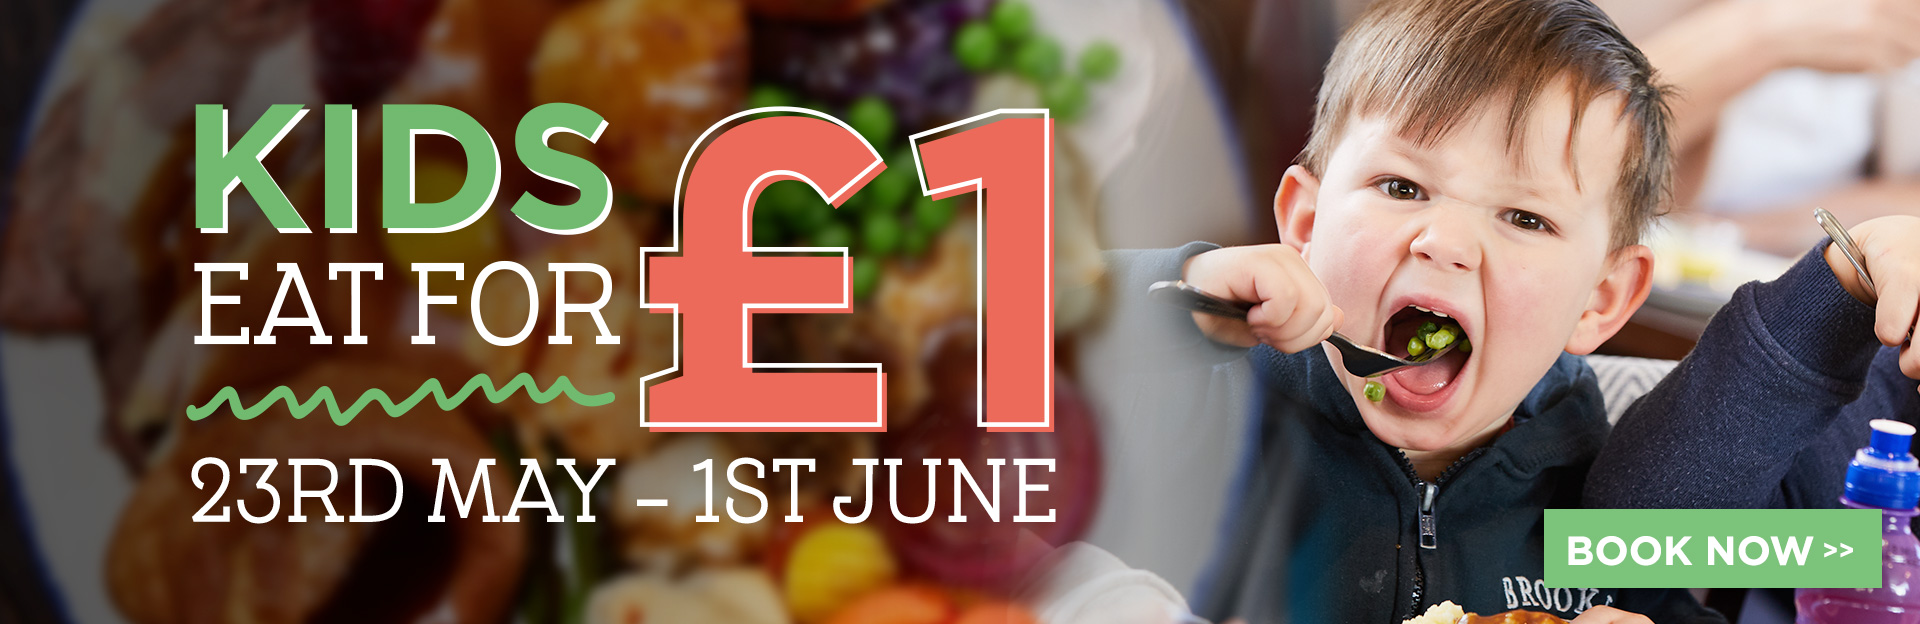 Kids eat for £1 at Barnbow